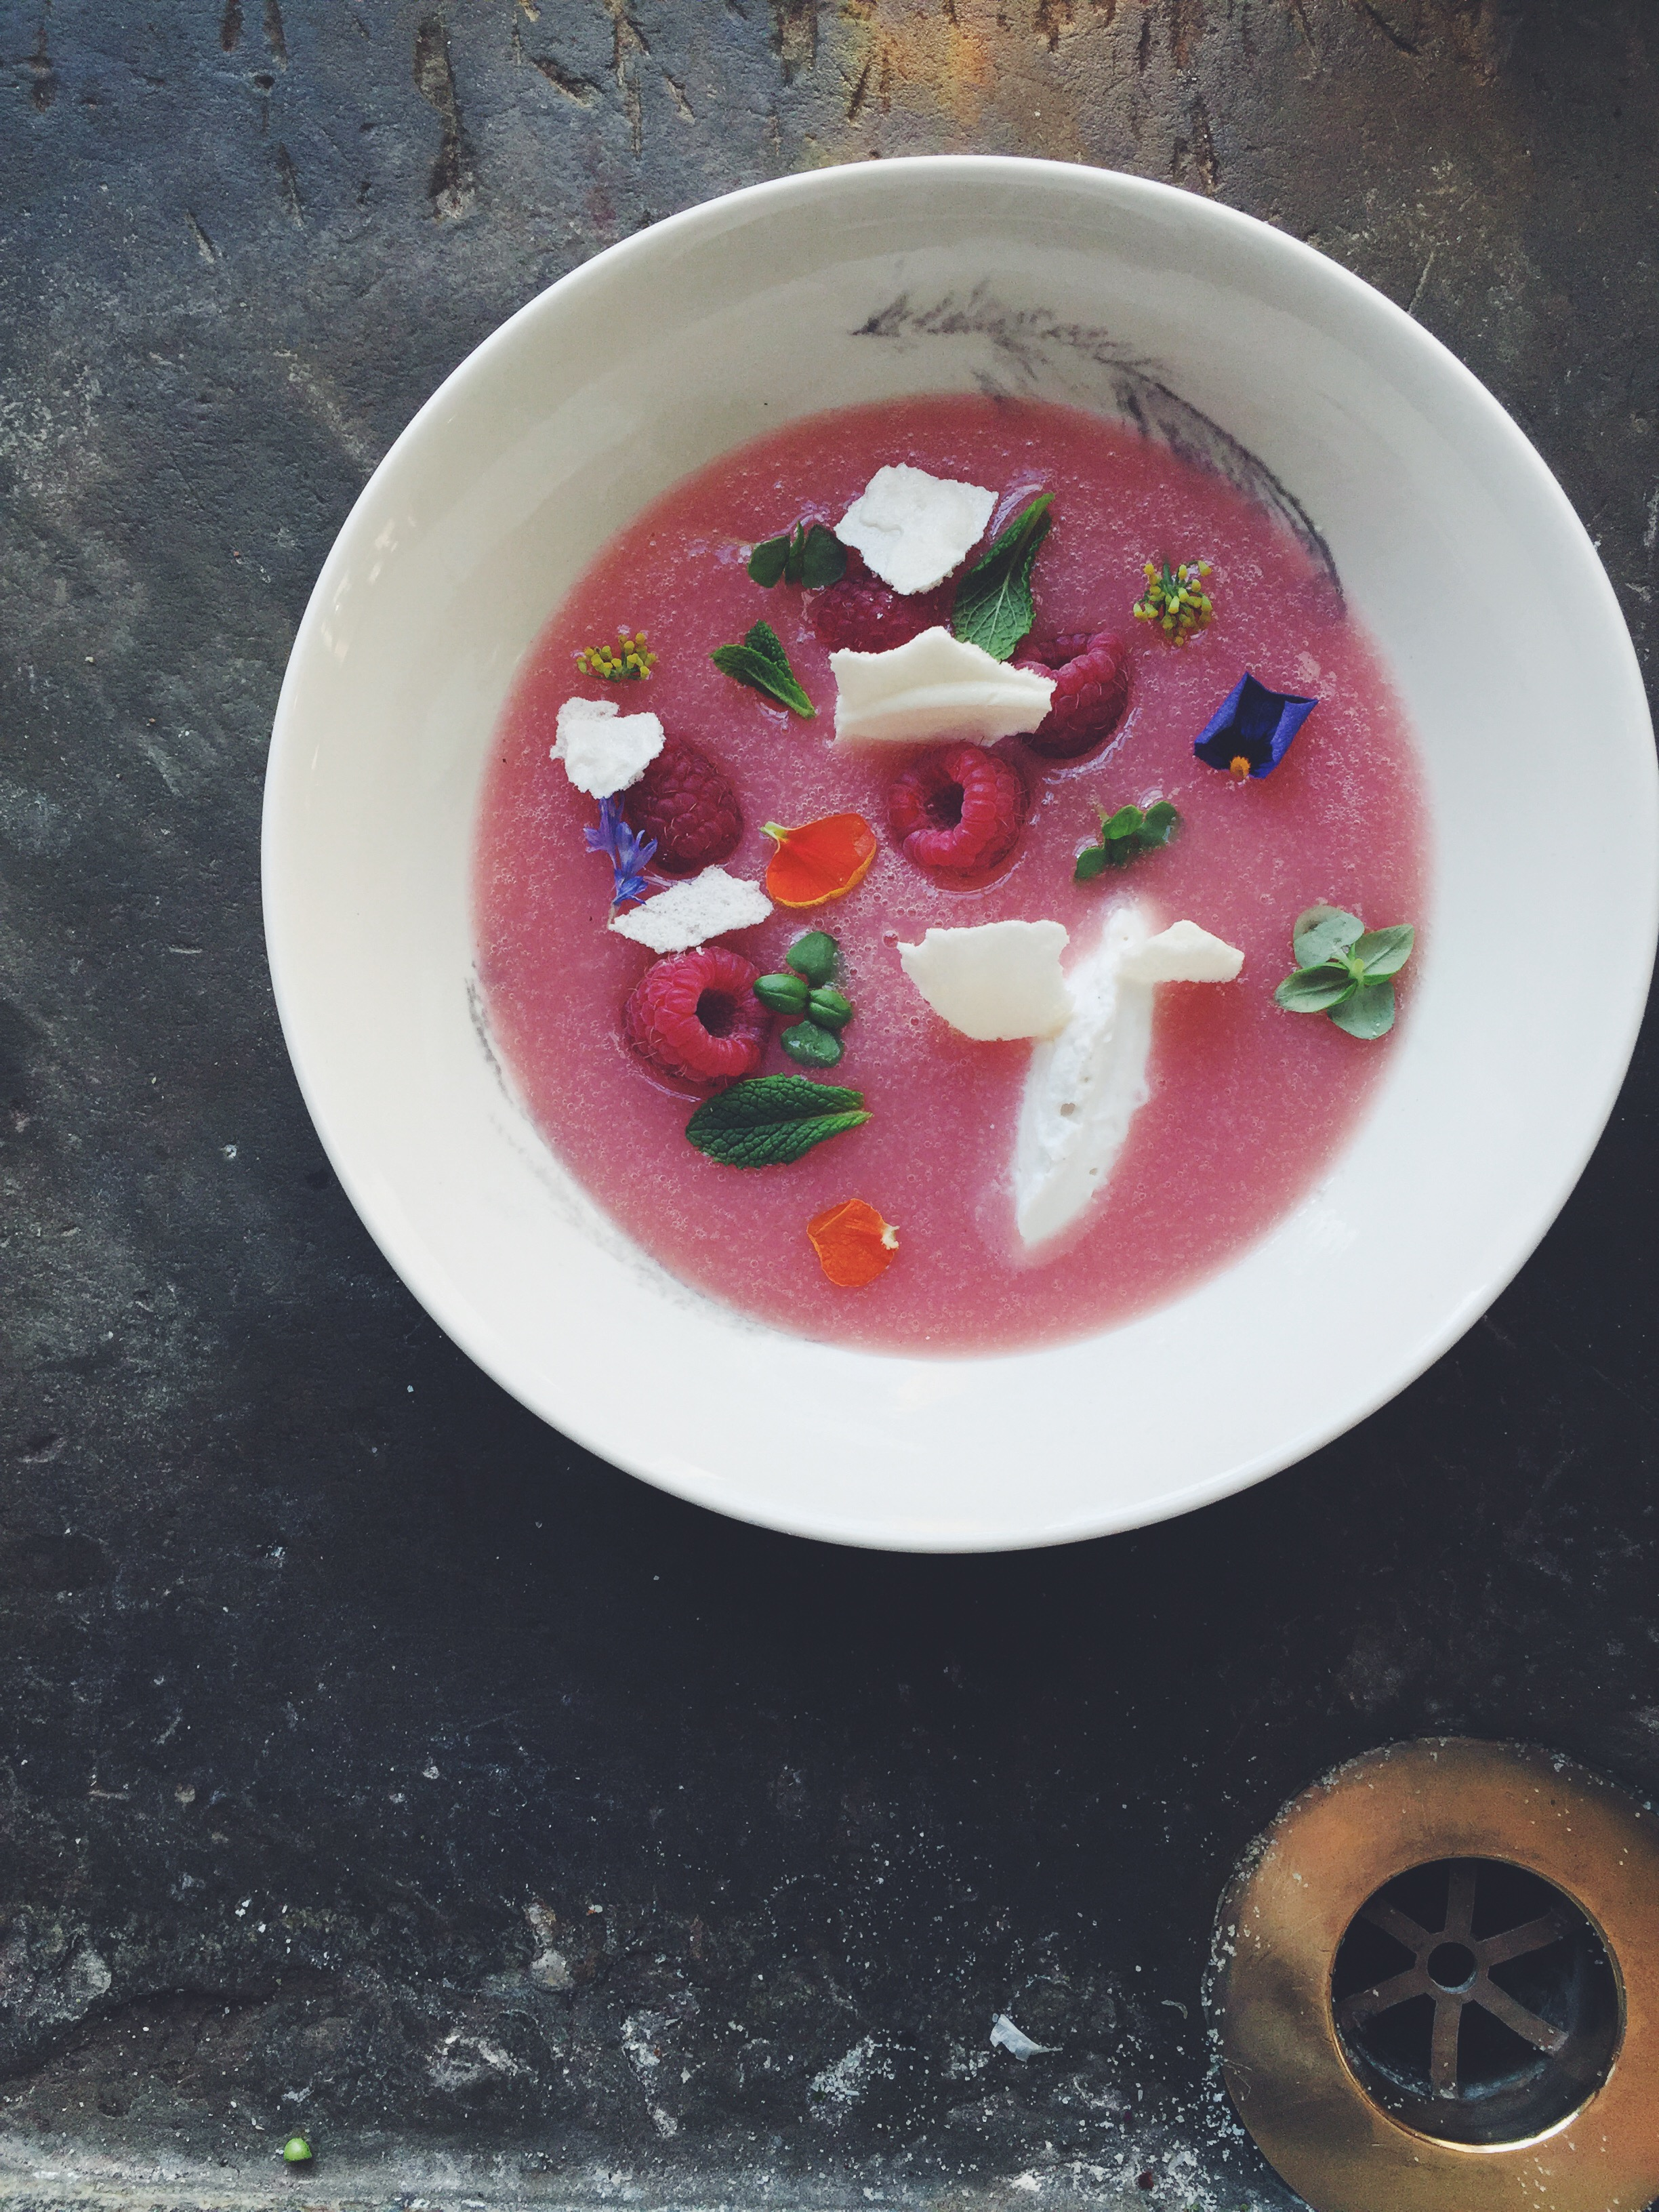 HillFoodCo_Peach and apricot liquor soup, vanilla coconut cream, Meringue, basil, raspberries and herbs.jpg